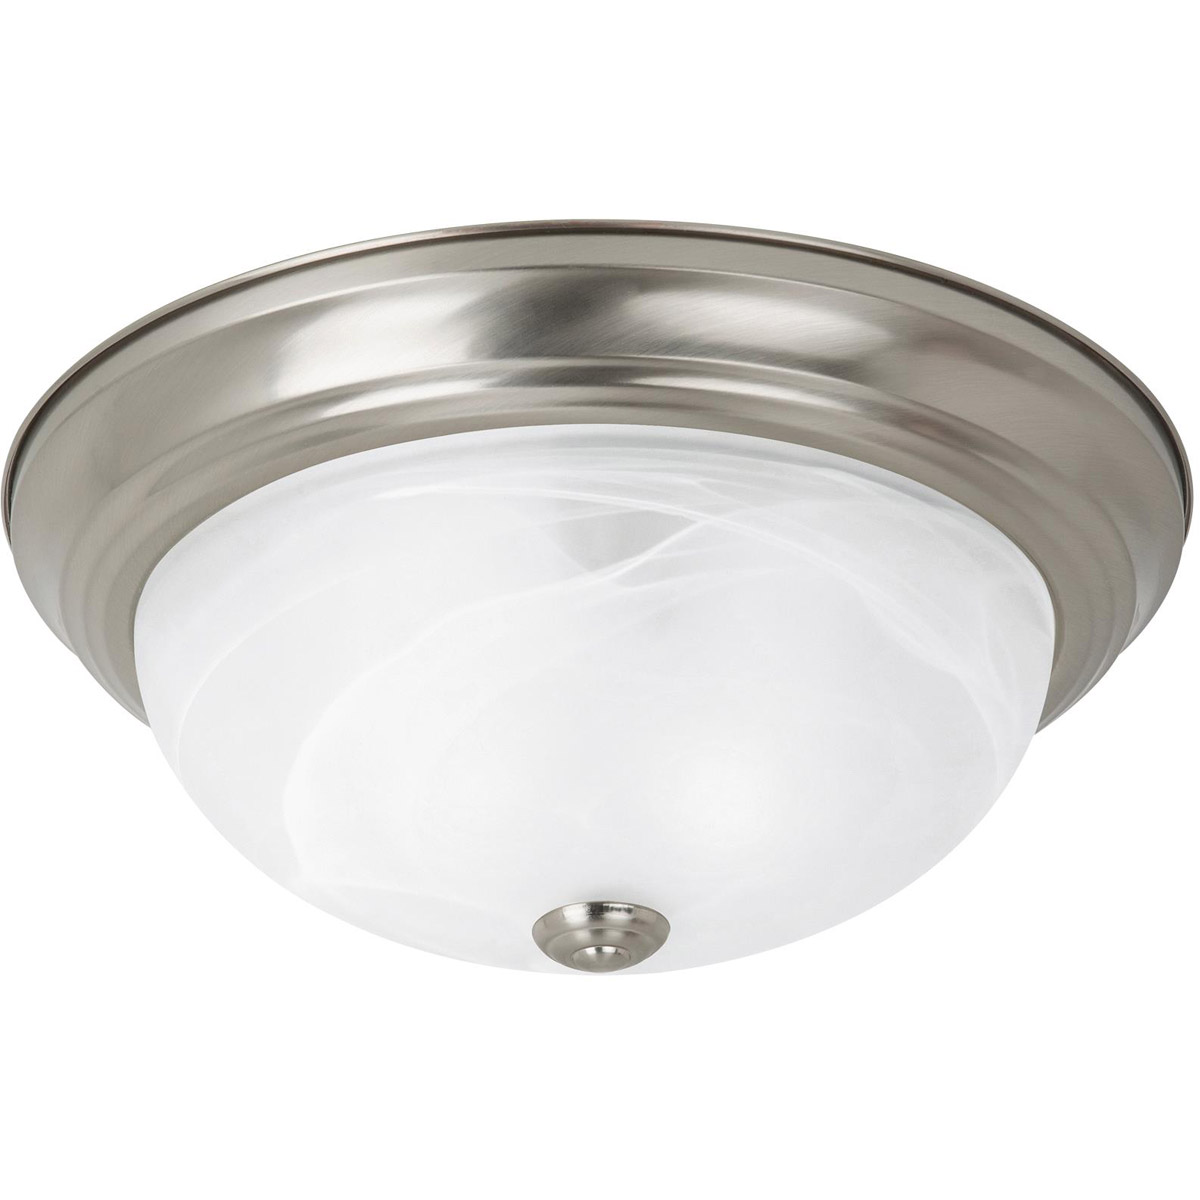 Sea Gull 75943-962 Windgate 3 Light 15 inch Brushed Nickel Flush Mount Ceiling Light in Standard photo